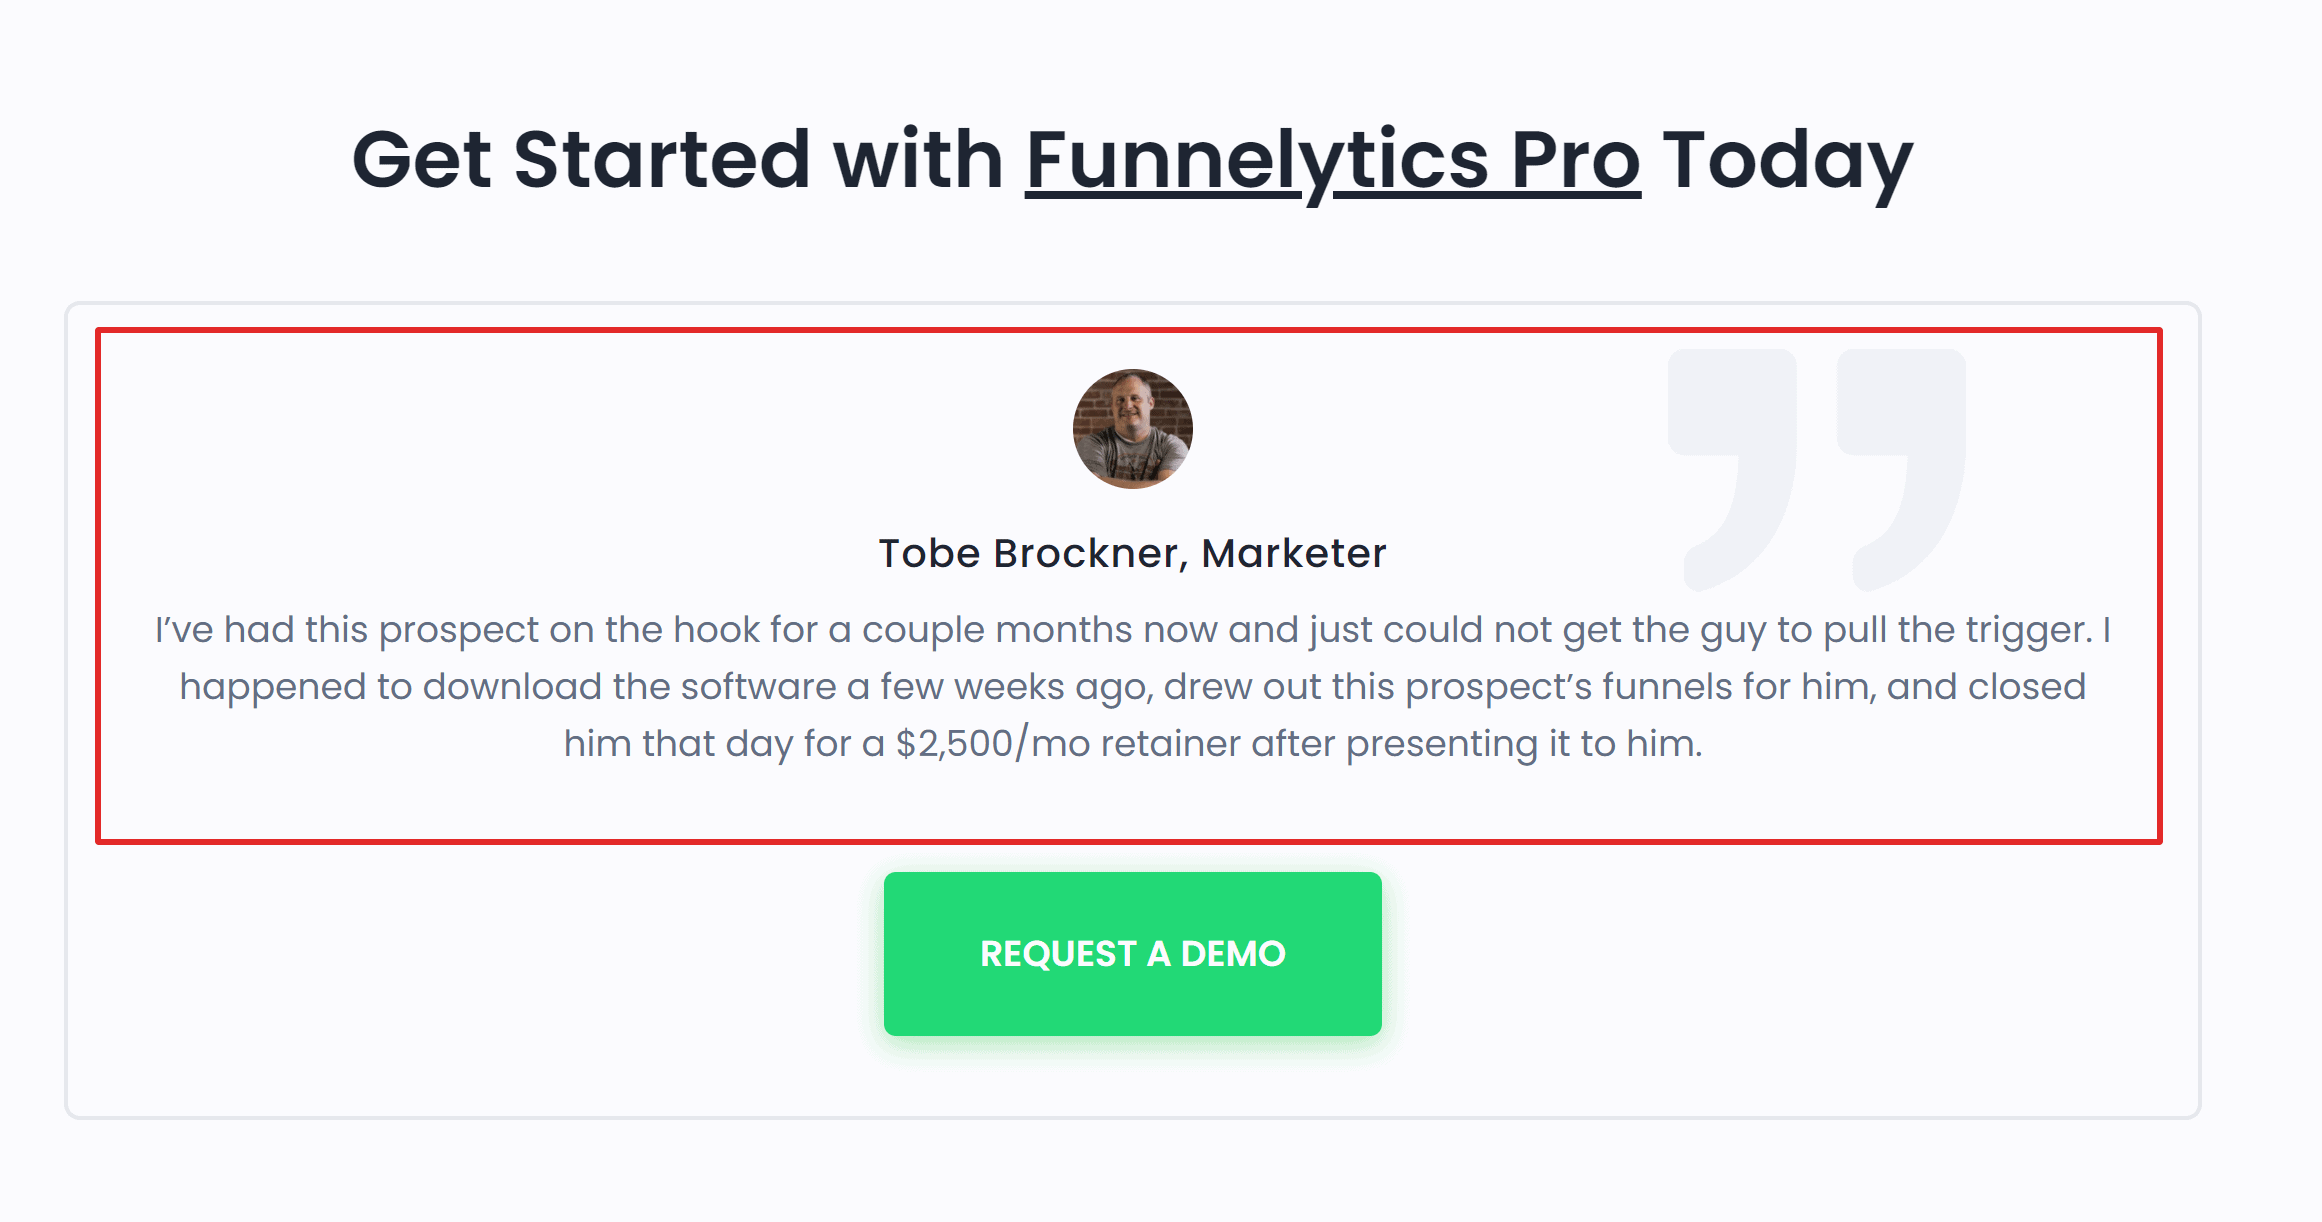 Funnelytics Pro Review